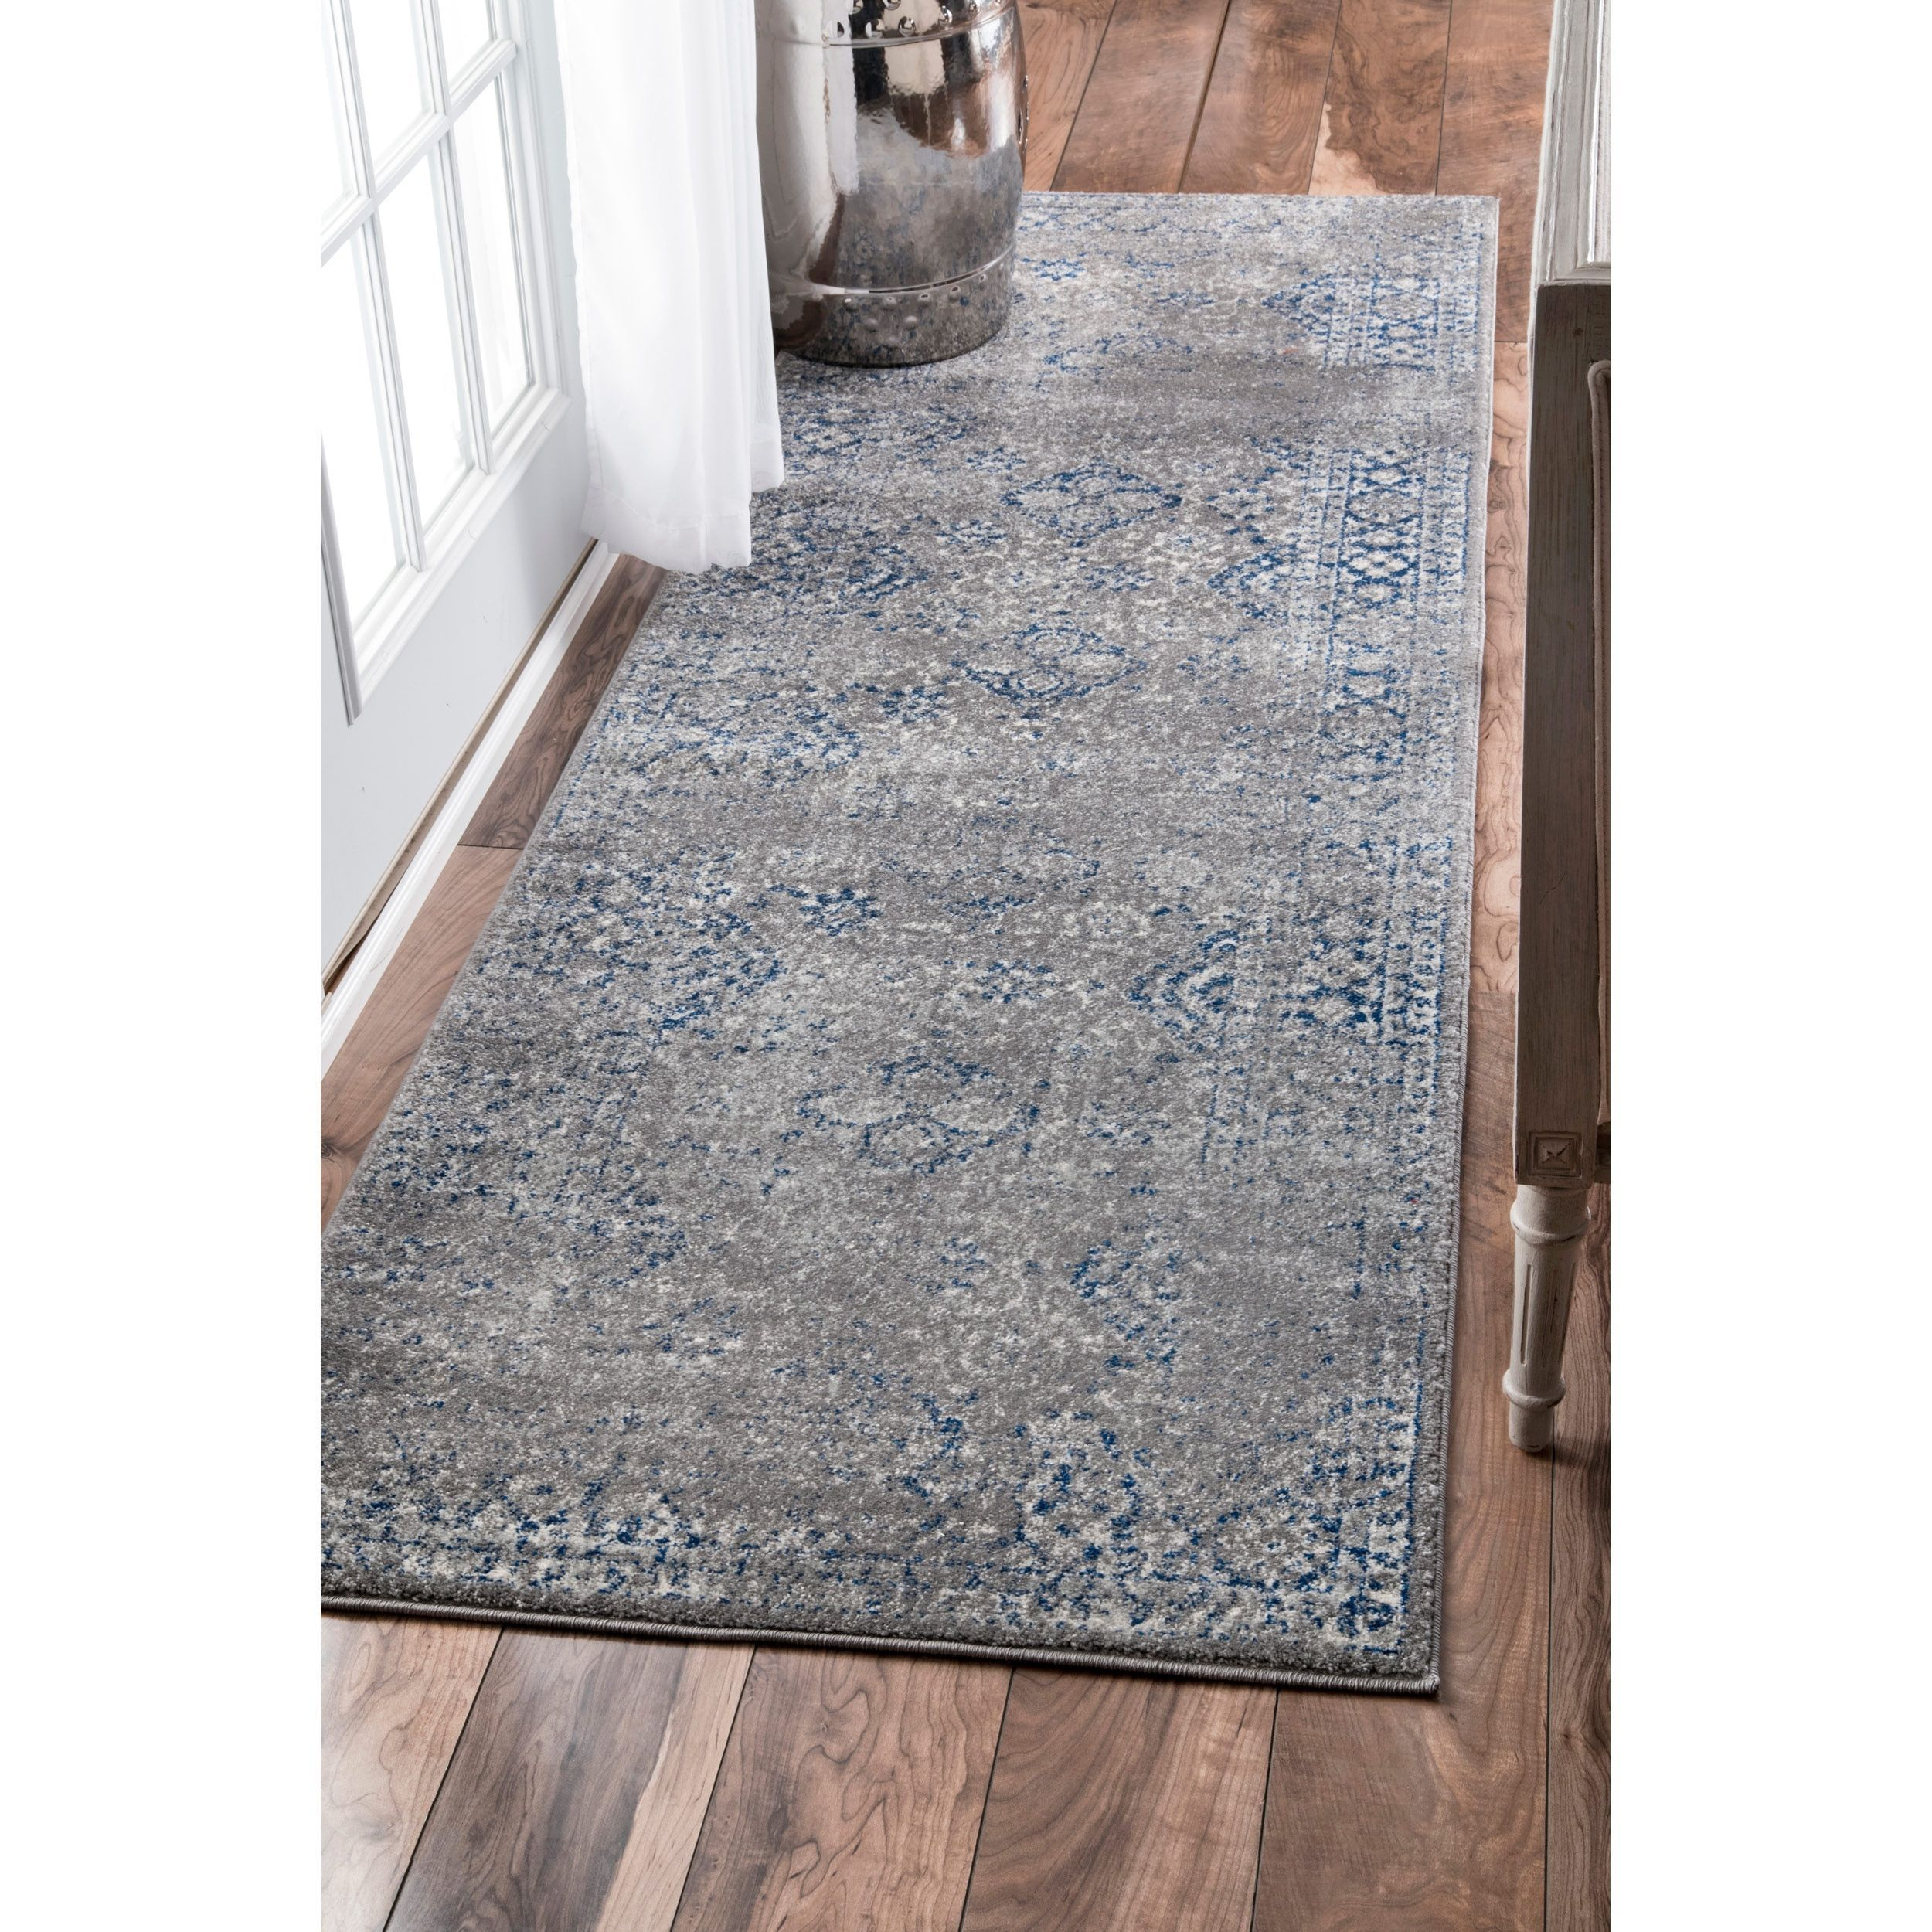 on kitchen with different catalina to of places blog size using corol rugs runner rug decorate